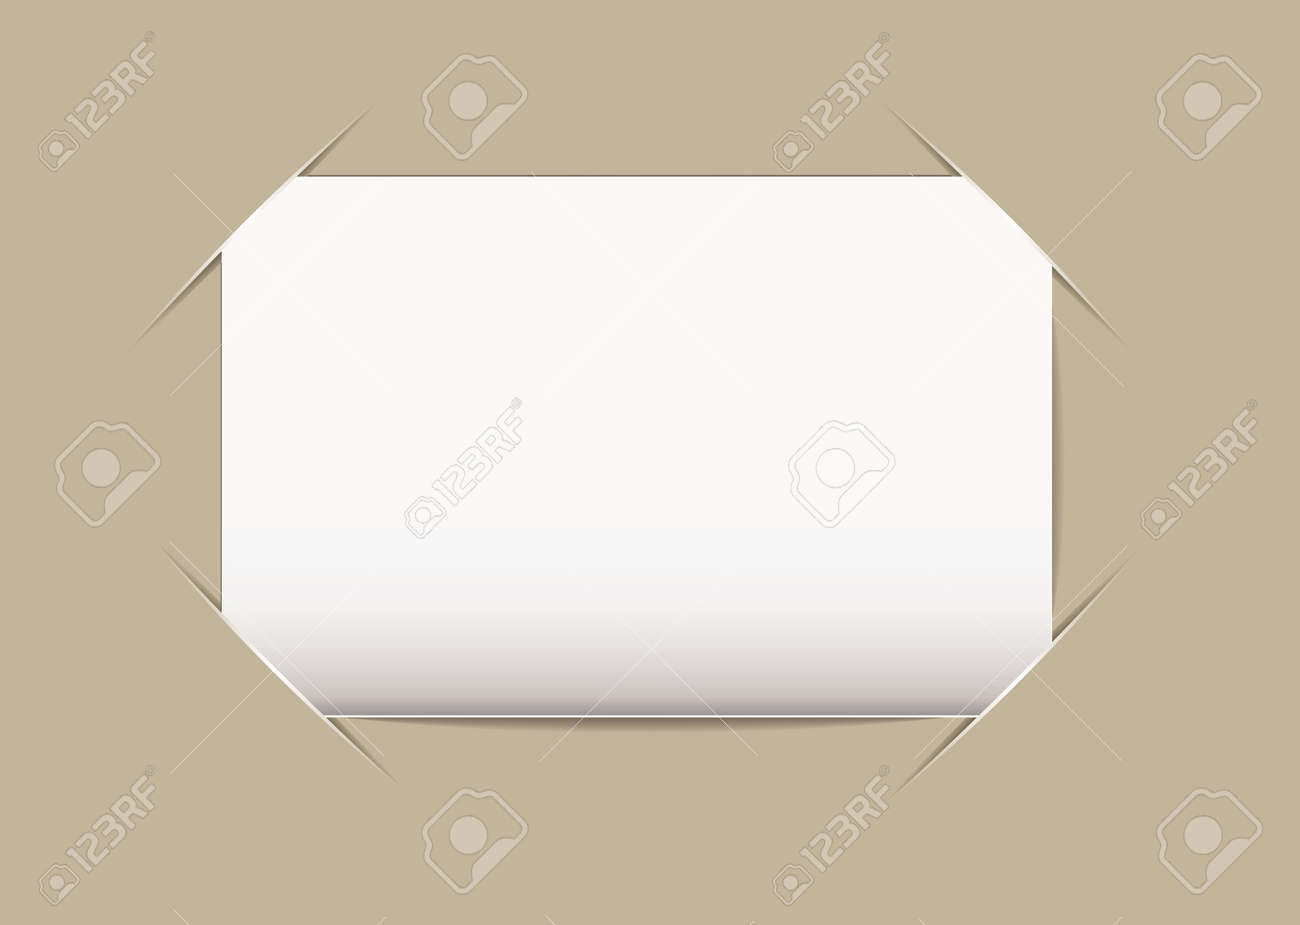 Business cards background choice image free business cards blank business cards image collections free business cards plain blank business card stuck on beige card magicingreecefo Choice Image